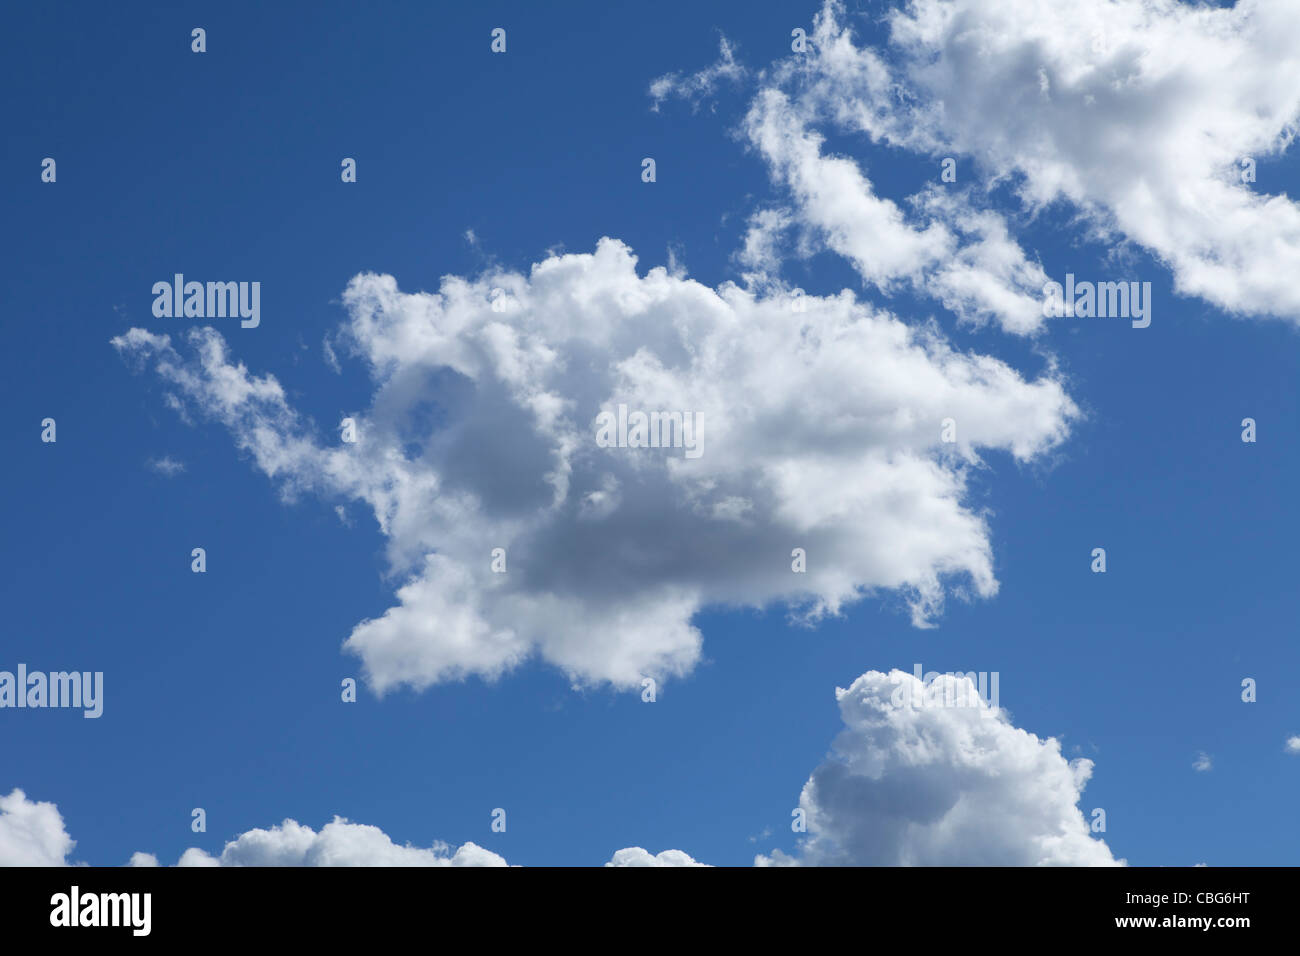 Fluffy white clouds set against a vivid blue sky in New South Wales, Australia - Stock Image